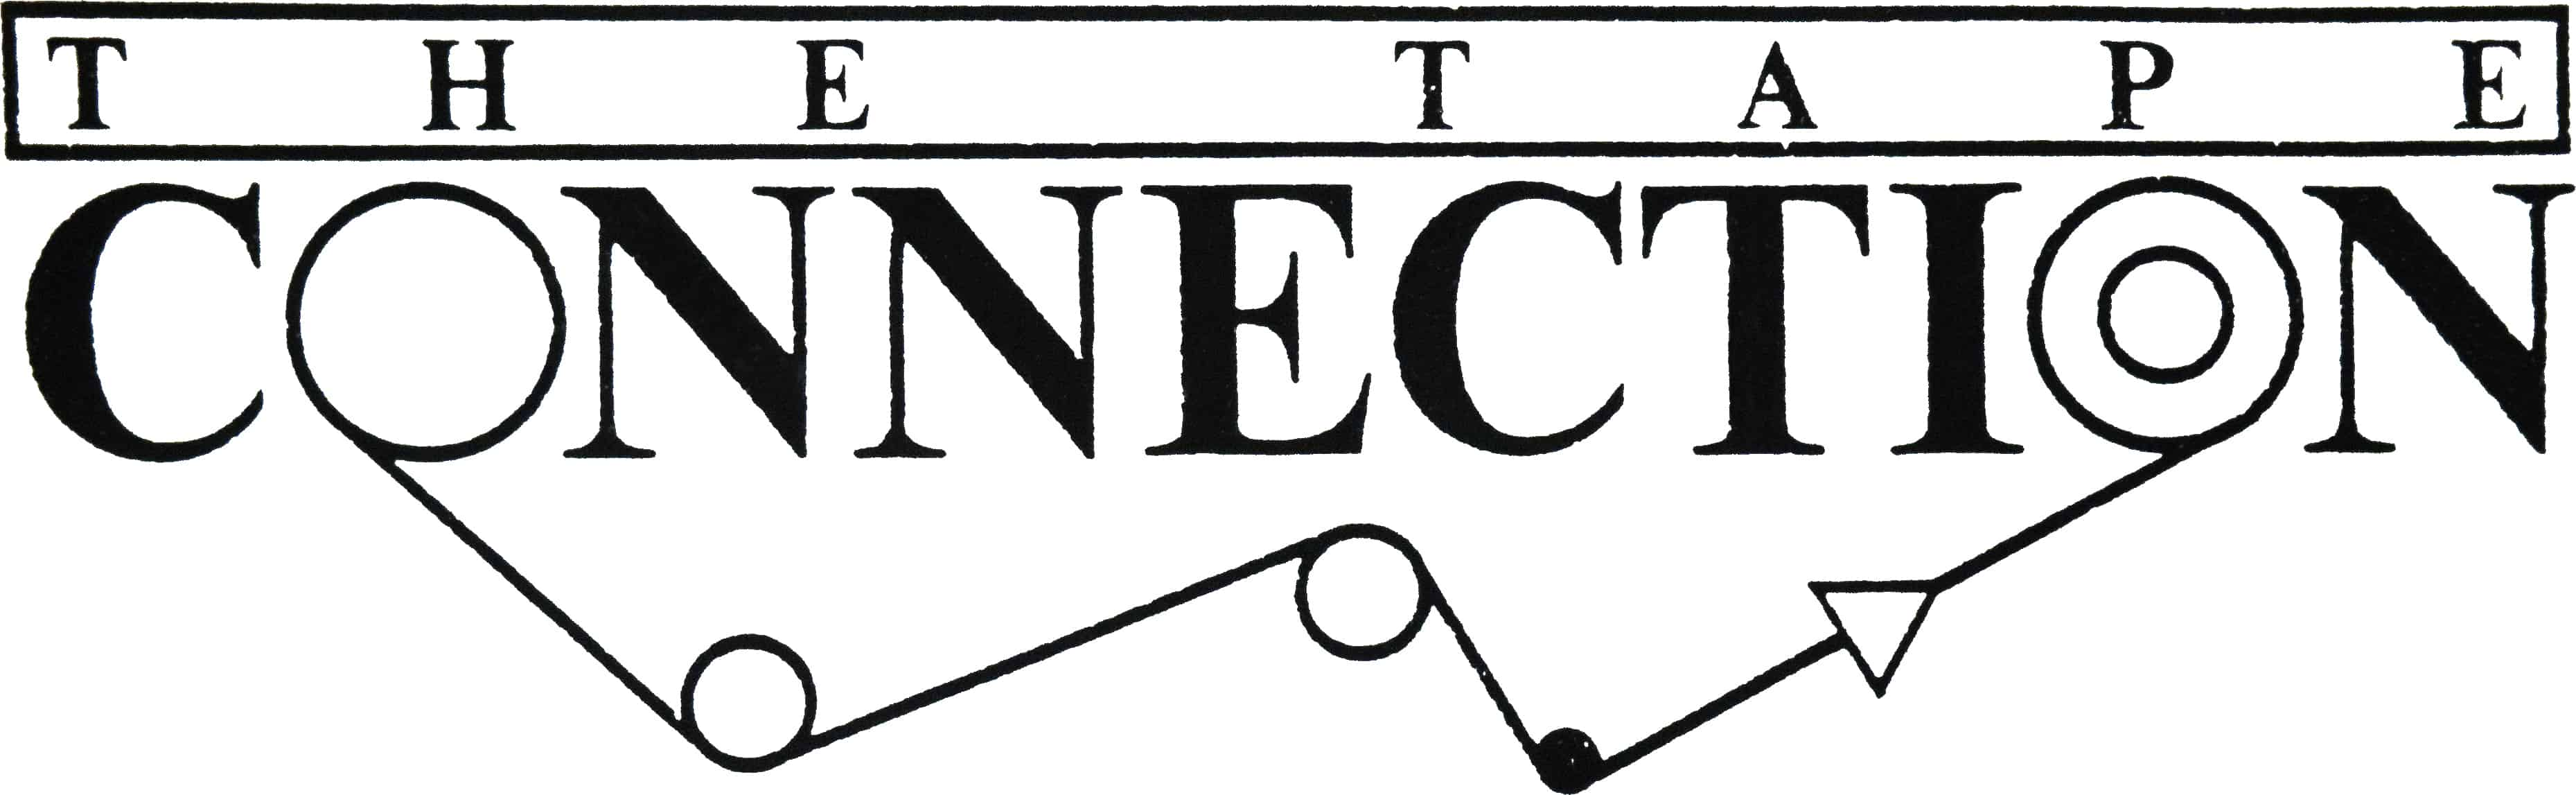 Tape Connection, Logo. Courtesy: Maia e Caterina Borelli.